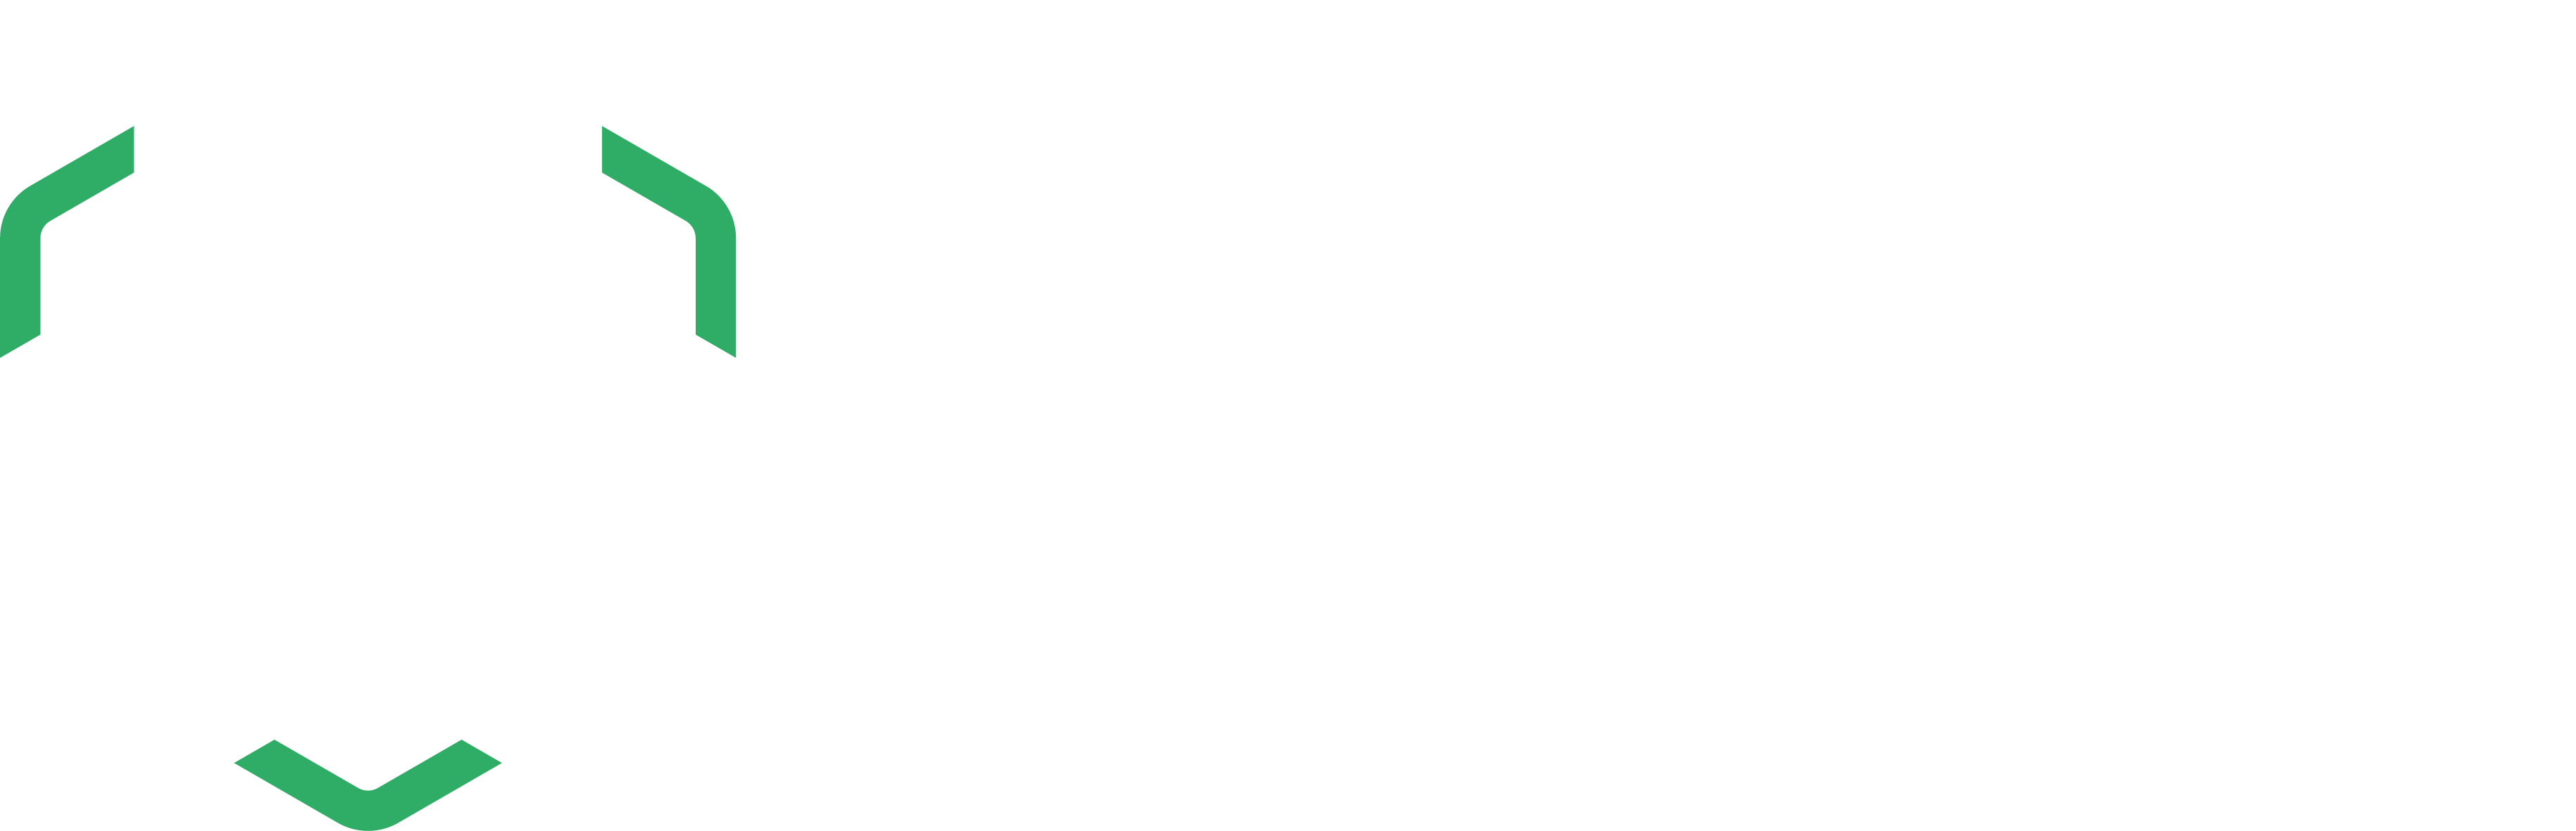 Alumasc Roofing Systems